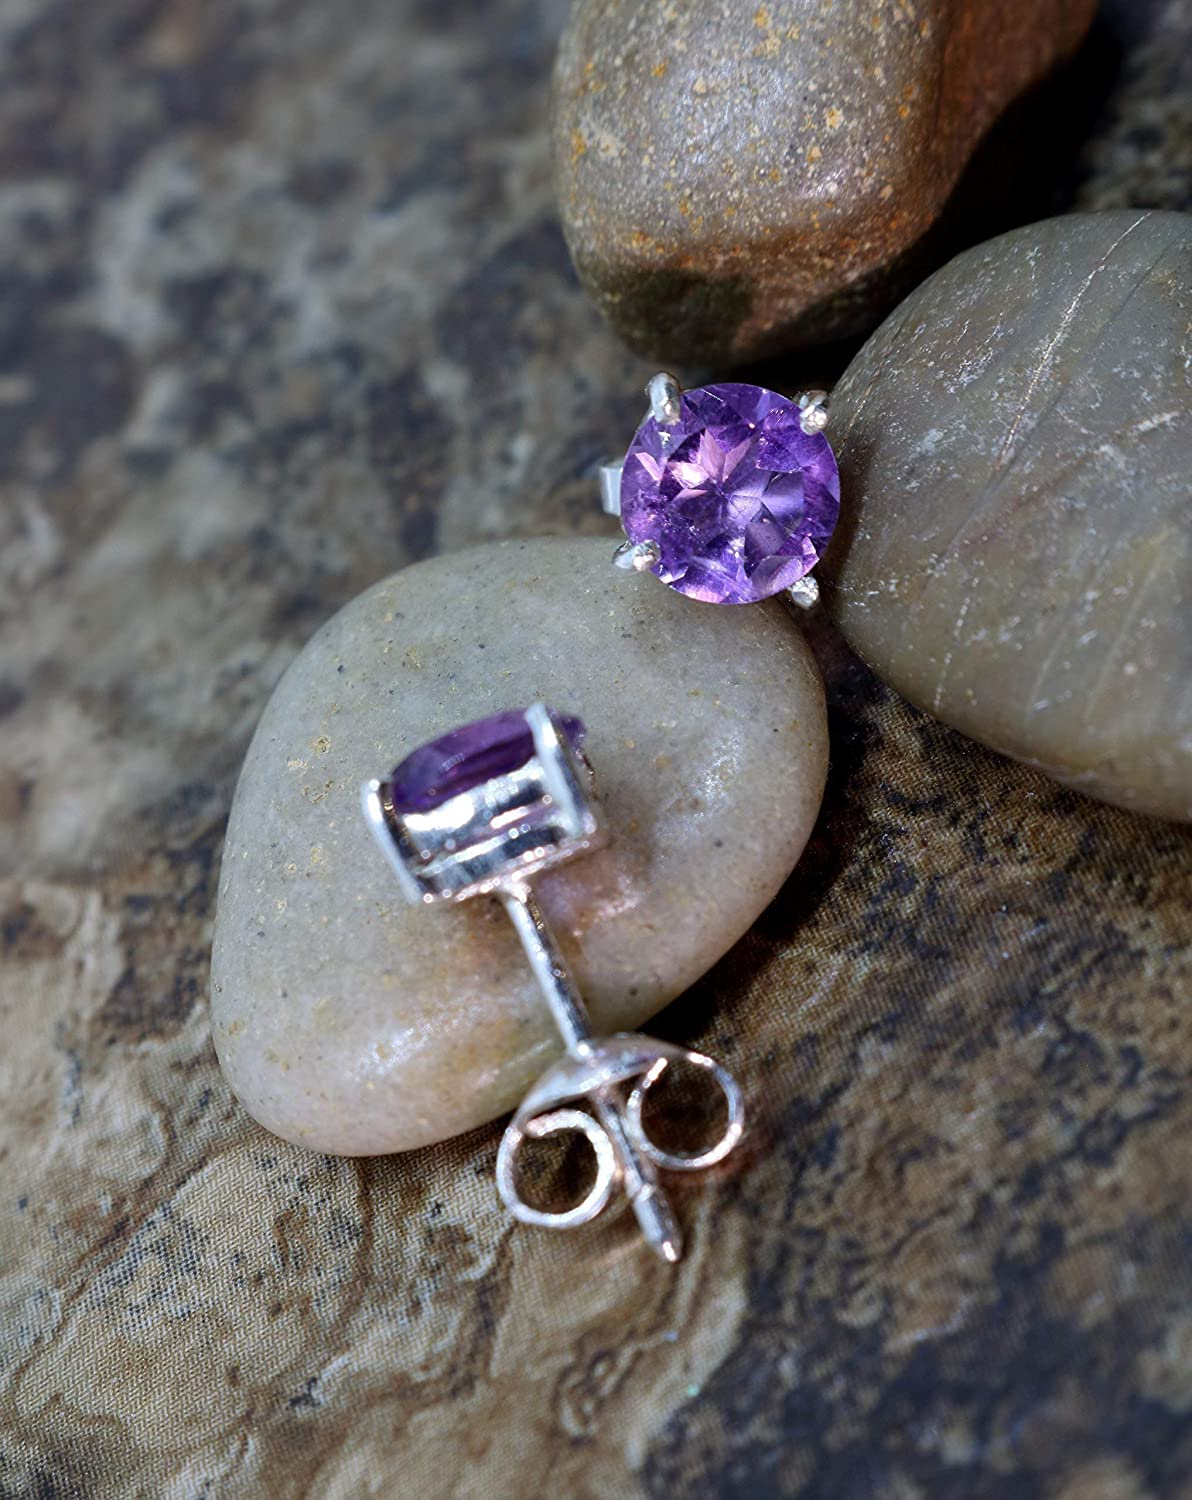 BLACK FRIDAY special SALE 27% Off - Sterling Silver Handmade Round Stud Earring with a Natural Amethyst Gemstone - For Wife for Girlfriend for Sister for Her